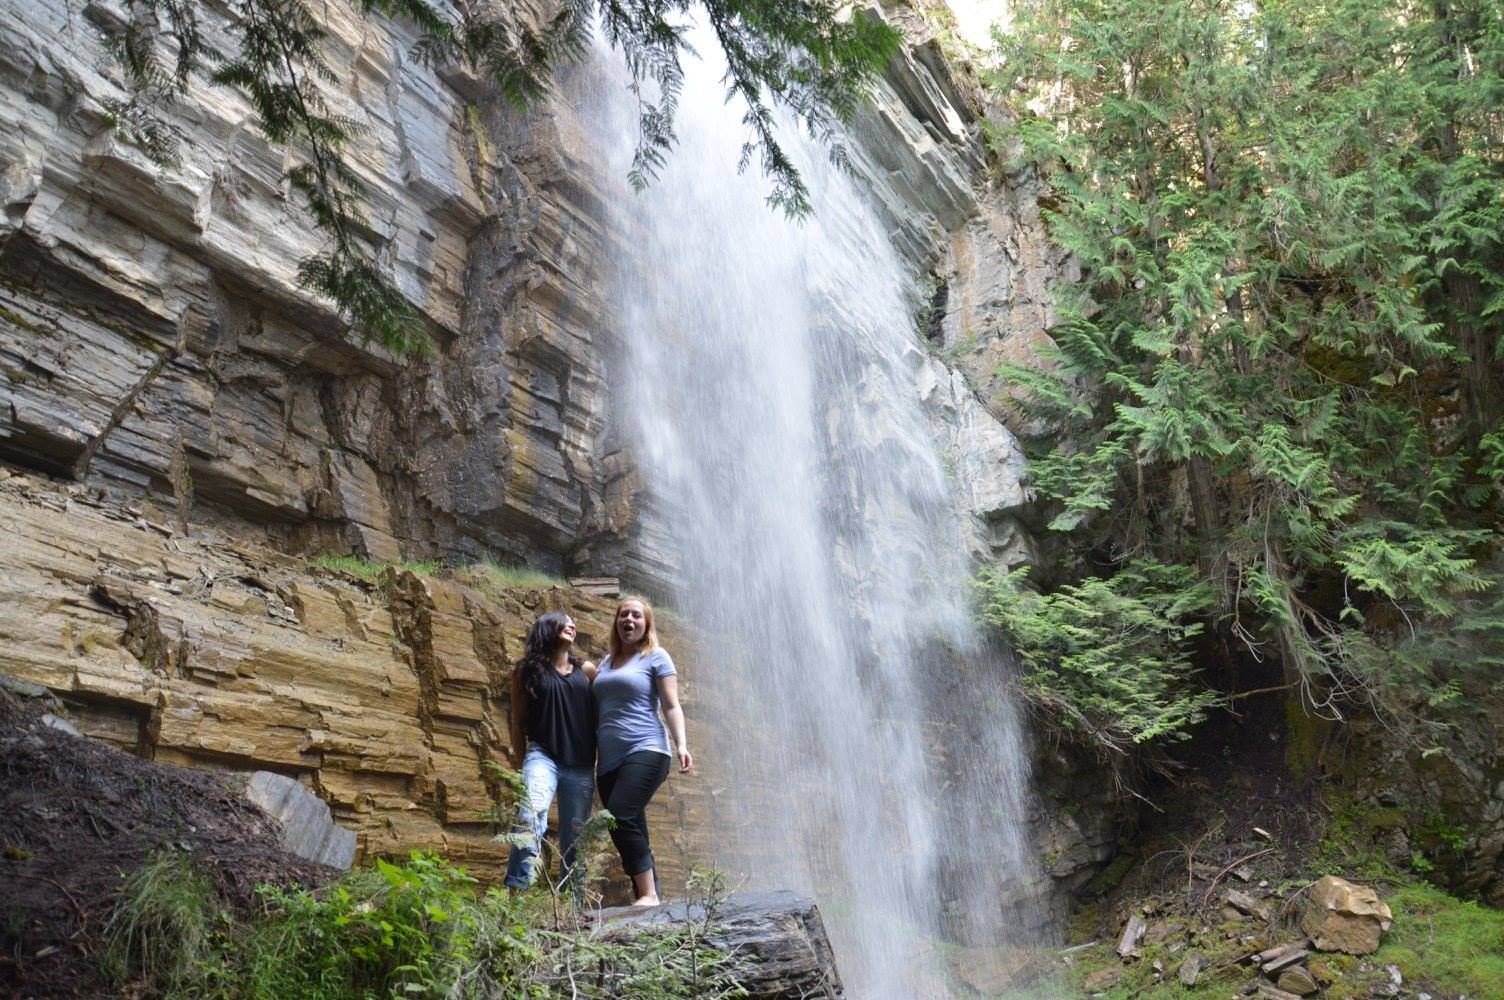 The second larger waterfall and baby Thatcher in Tia's belly ♡